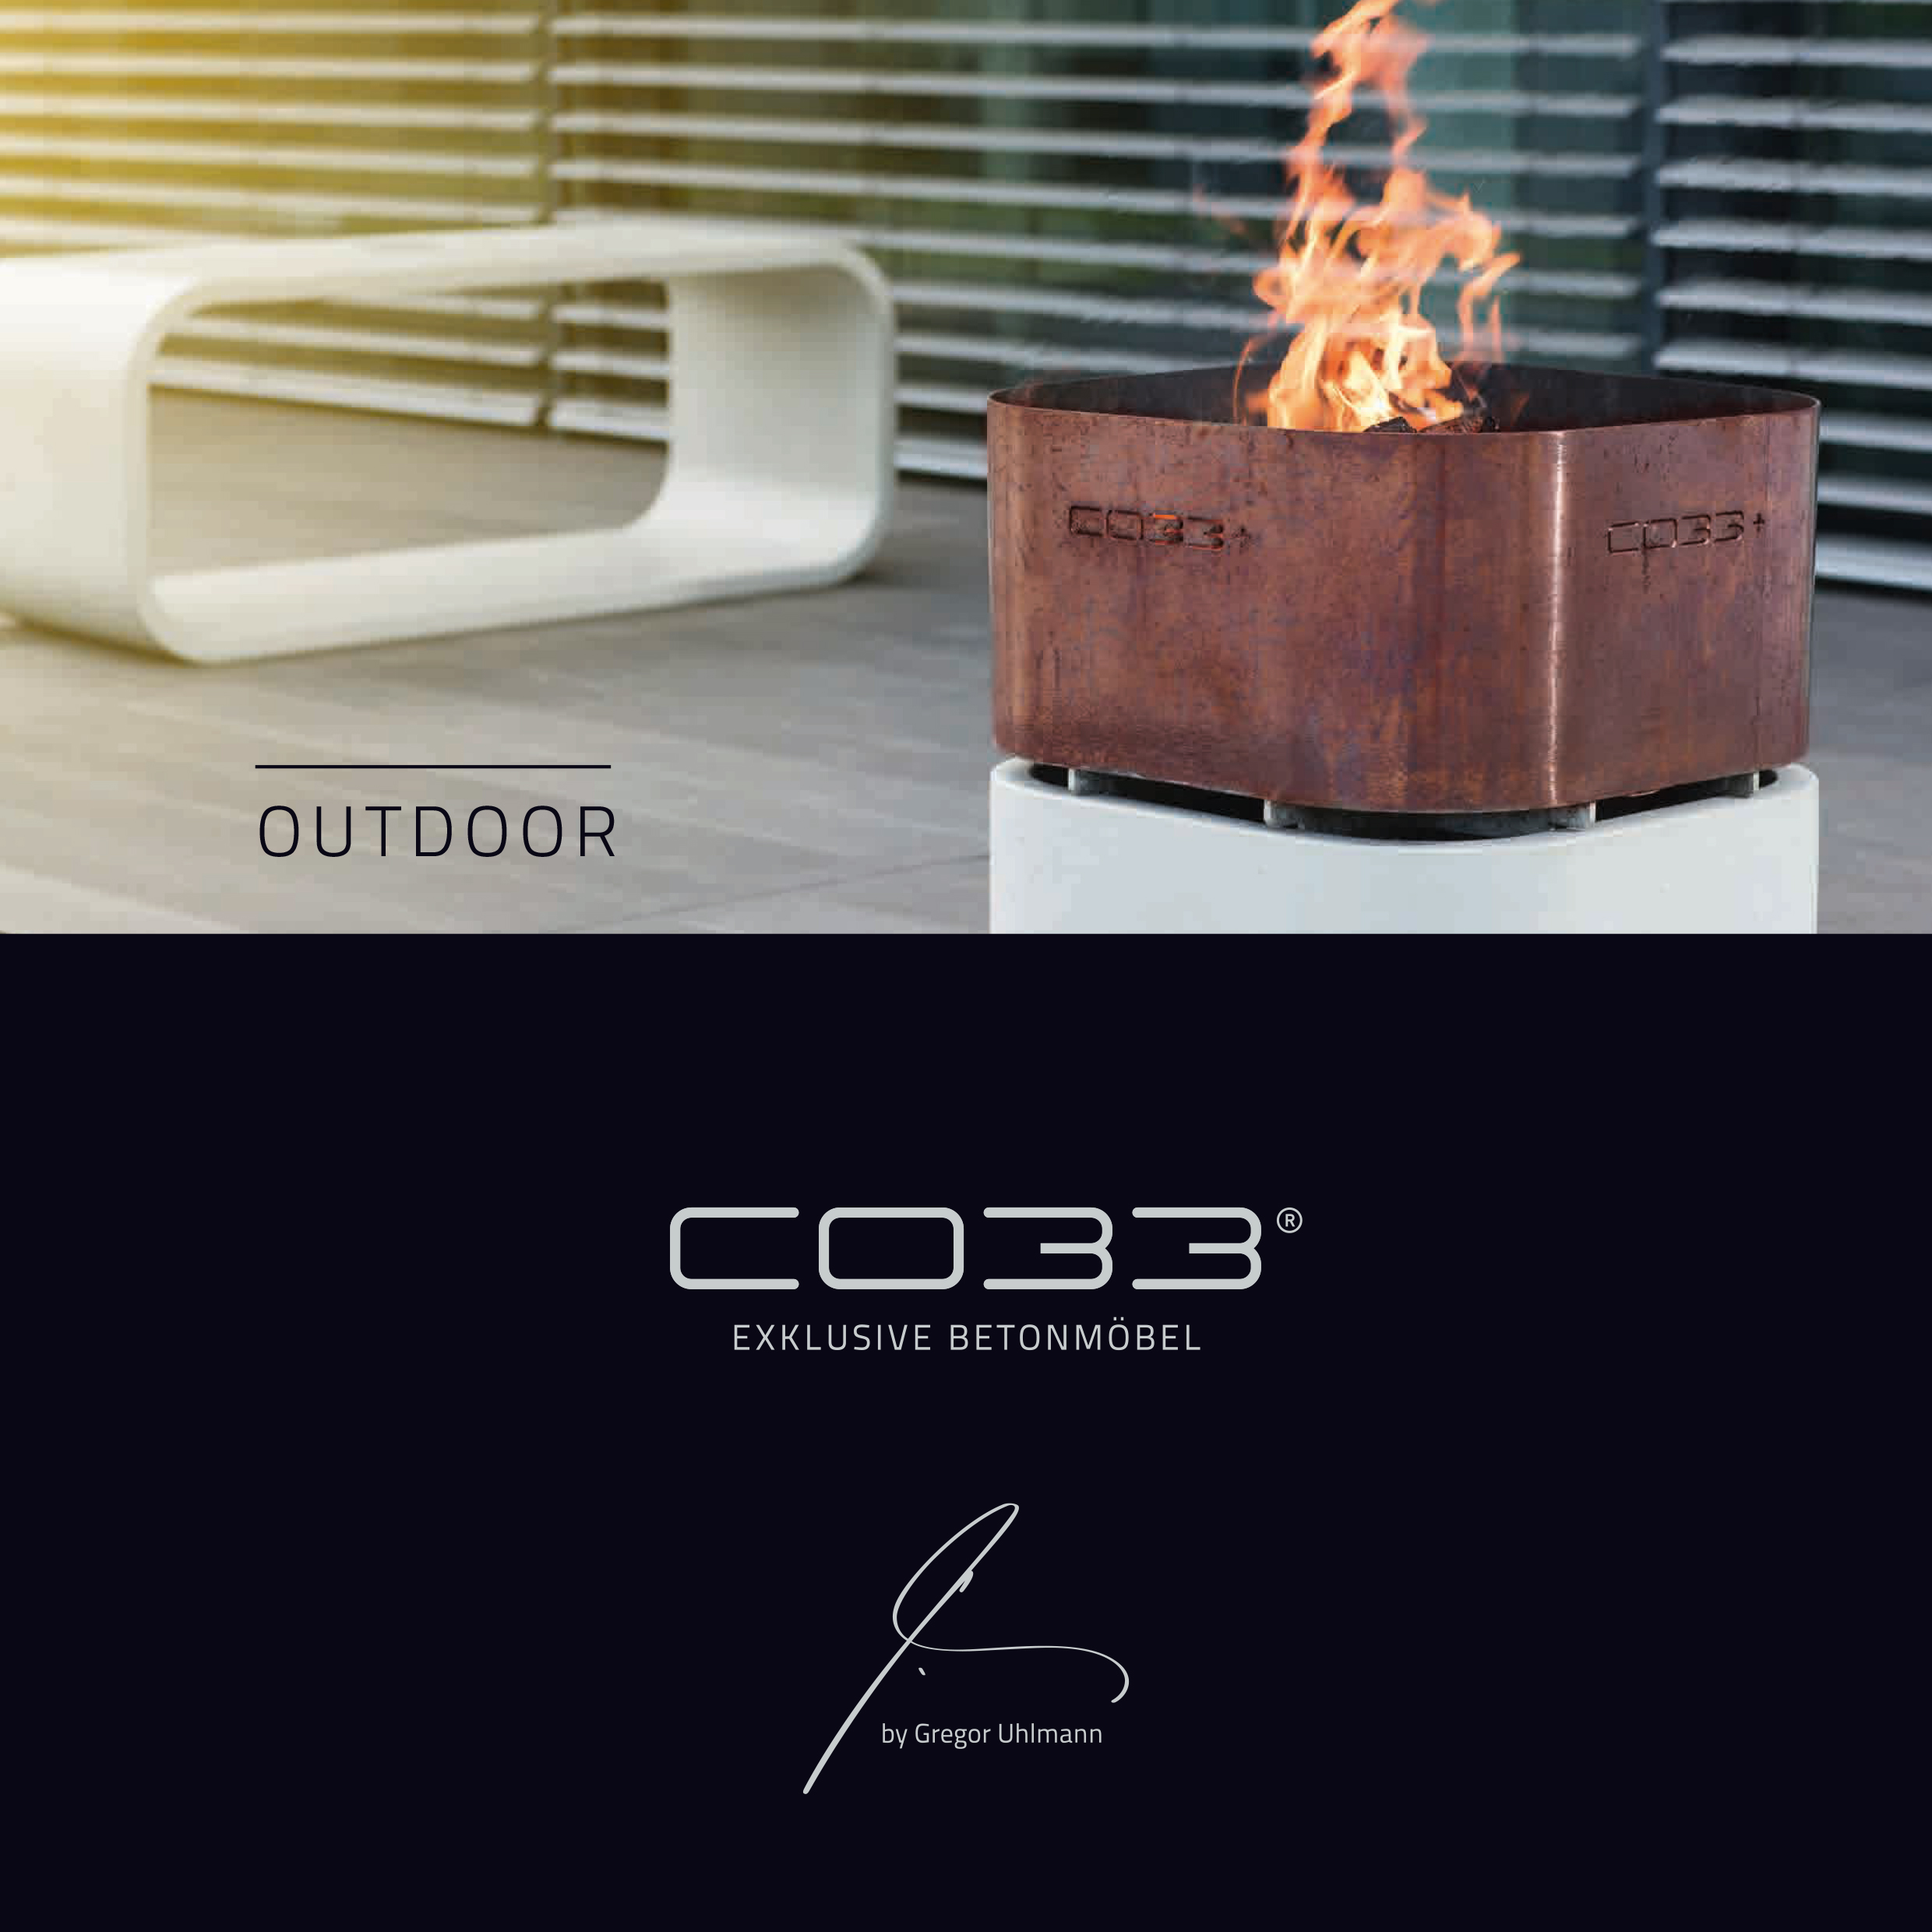 CO33-Katalog-Outdoor-2020